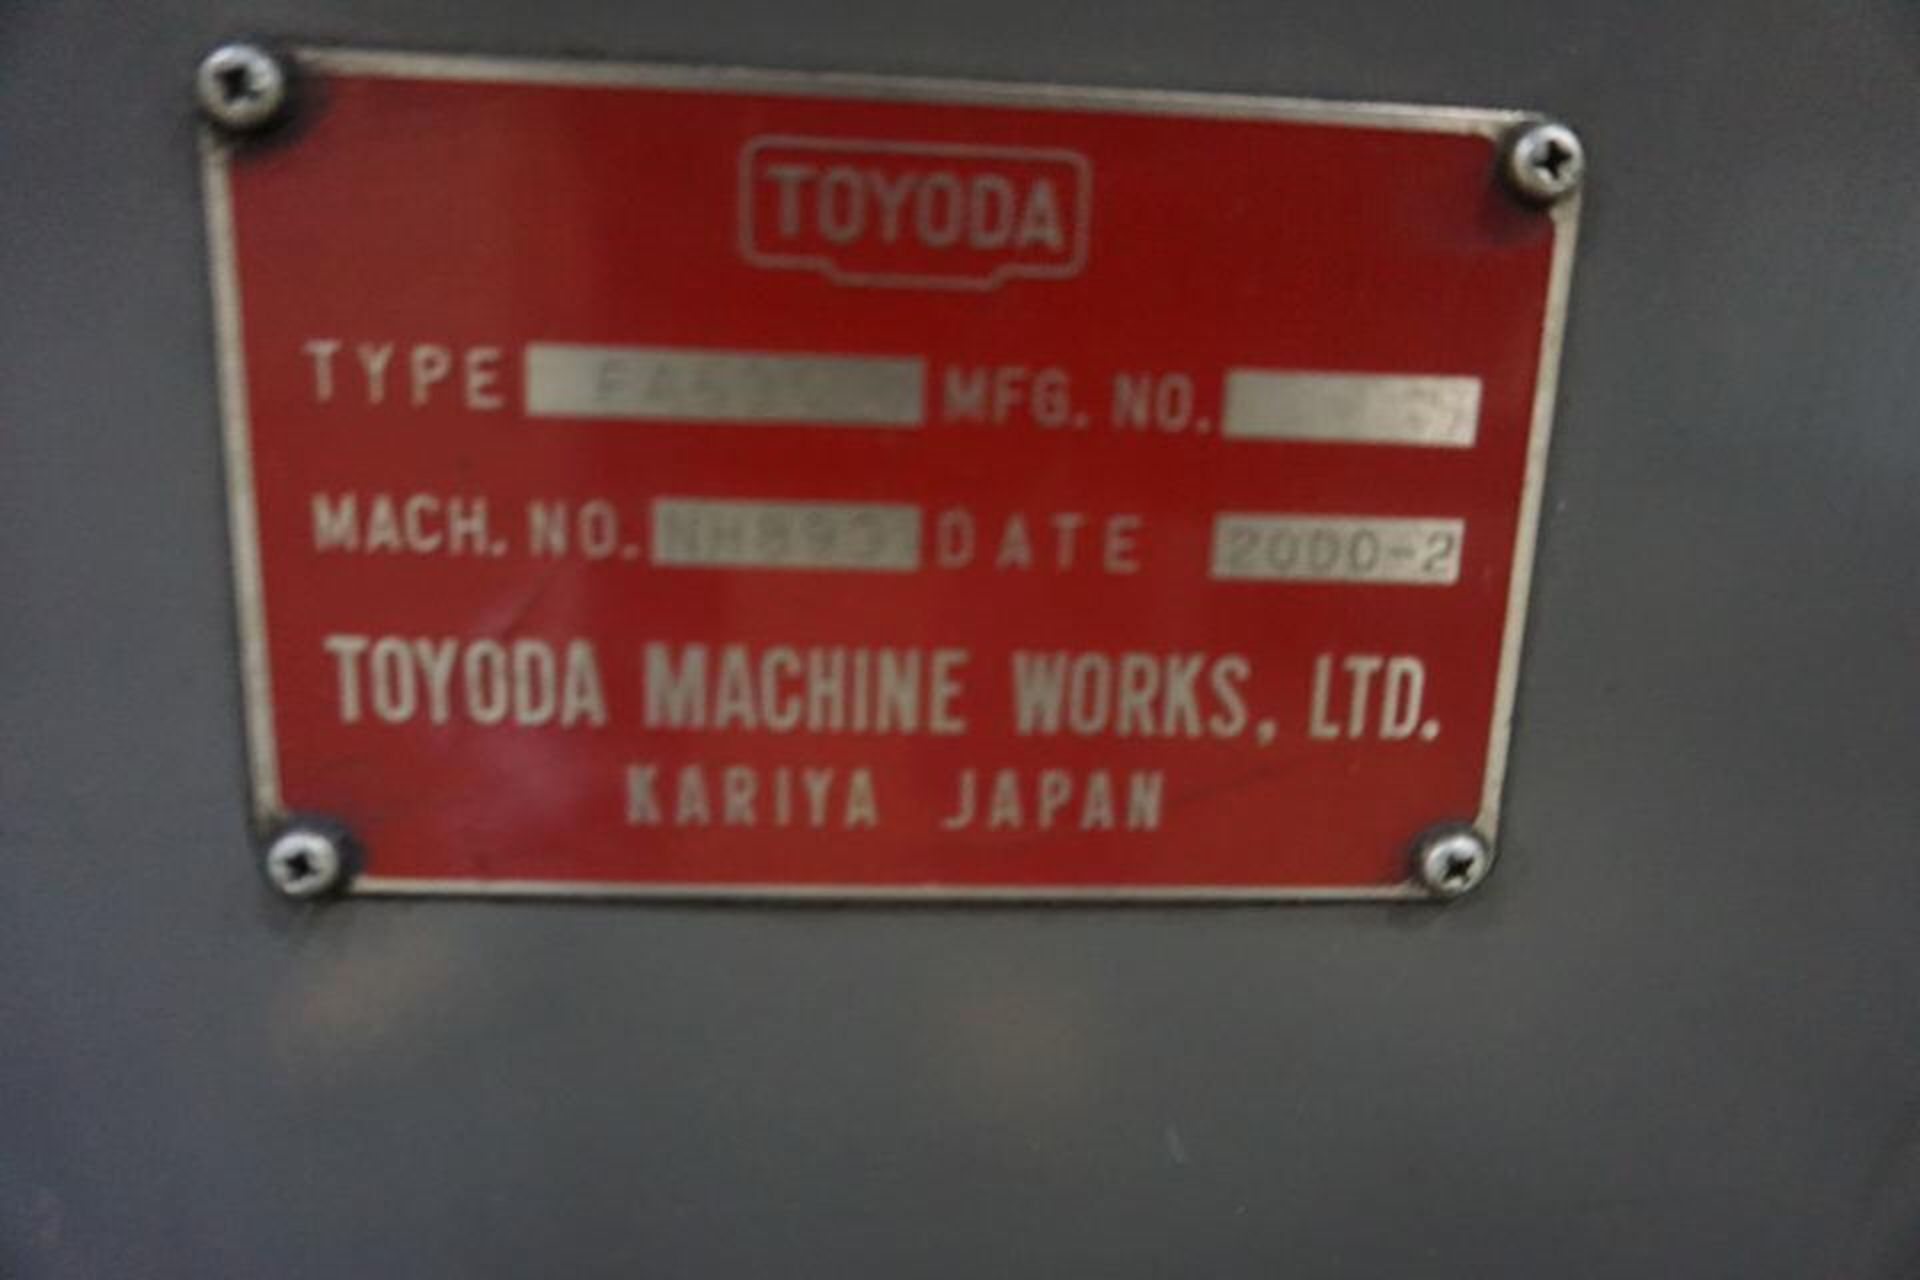 TOYODA HORIZONTAL MILLING MACHINE, DOM: 2000 (ASST#: P120201) - Image 2 of 6